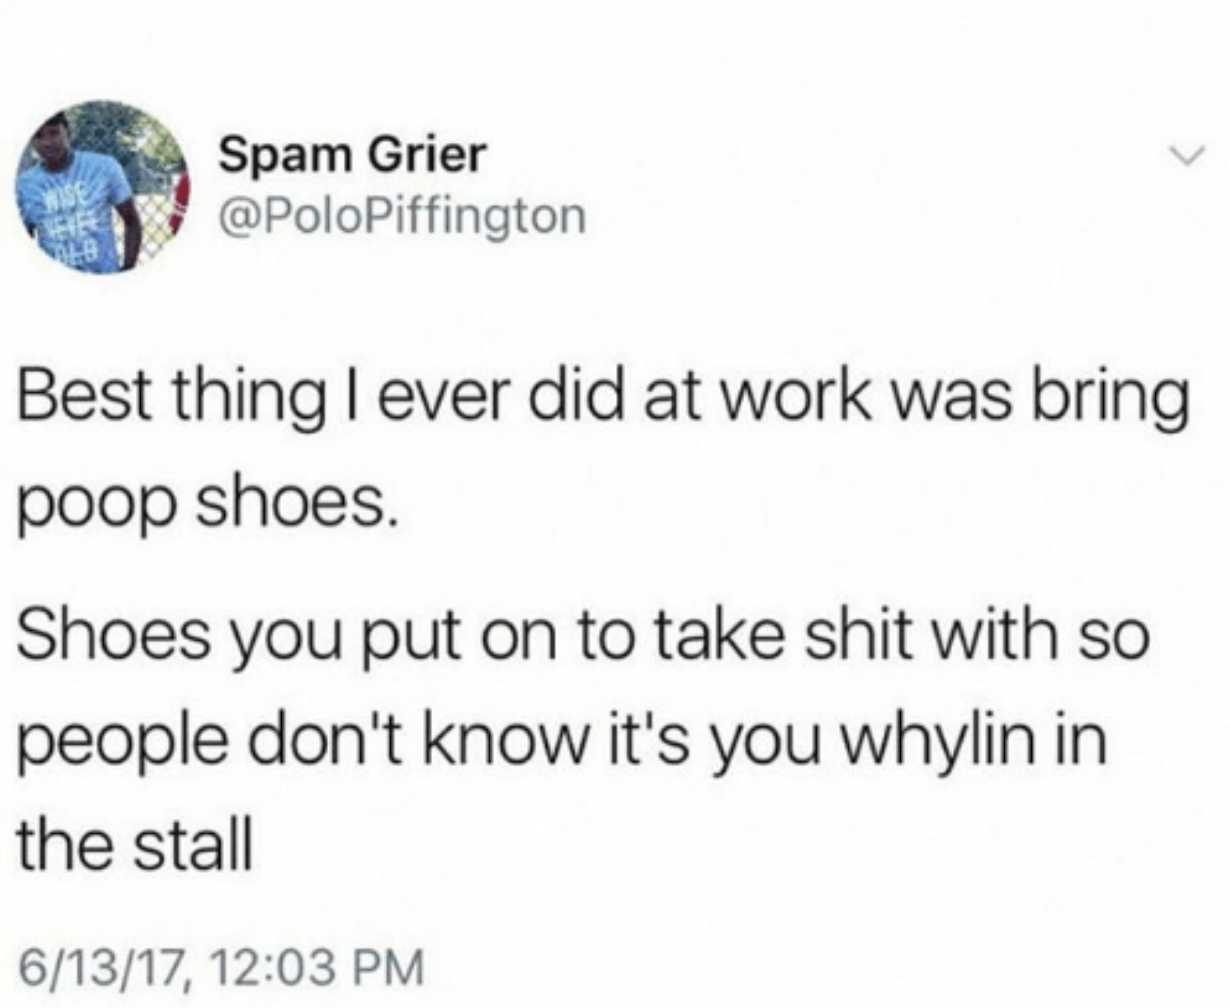 someone who briings different shoes to work for when they poop